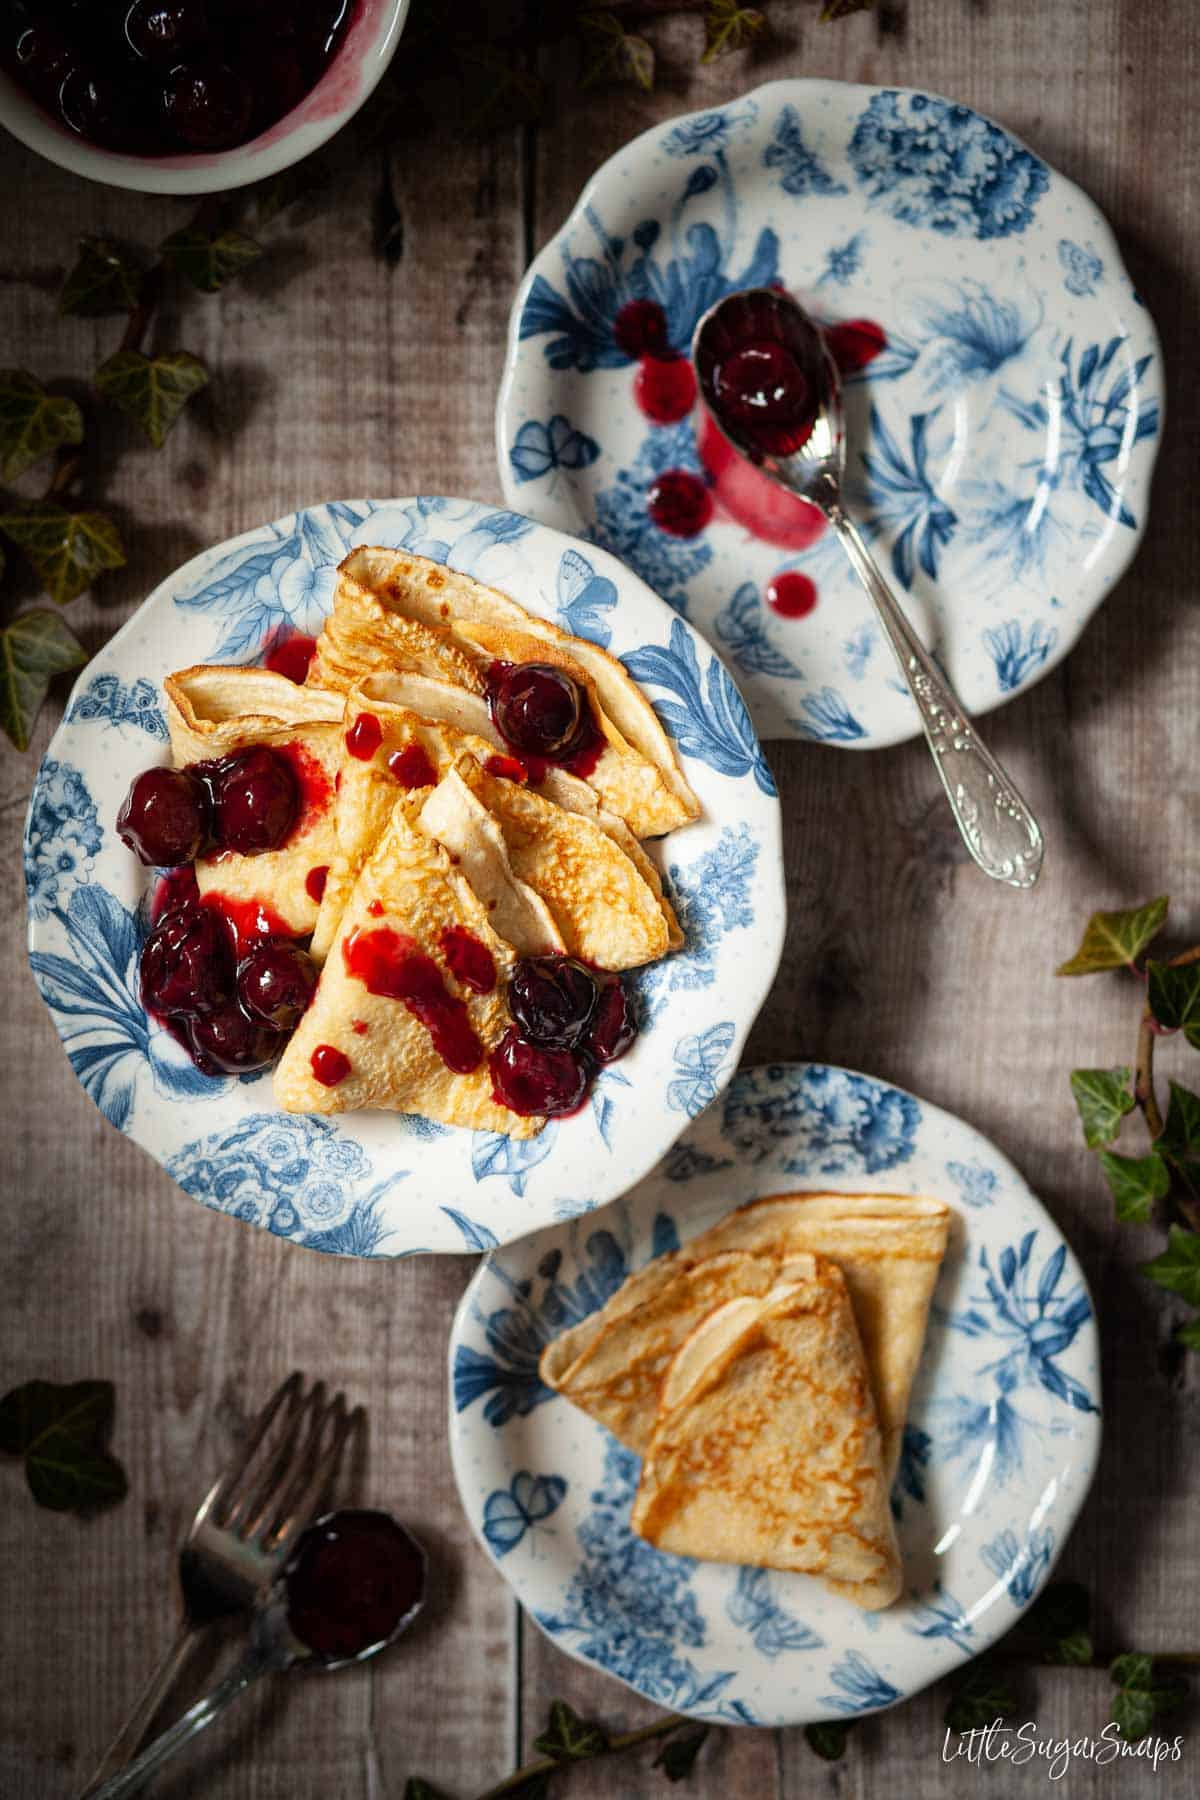 A plate of English thin pancakes with cherry sauce drizzled on top